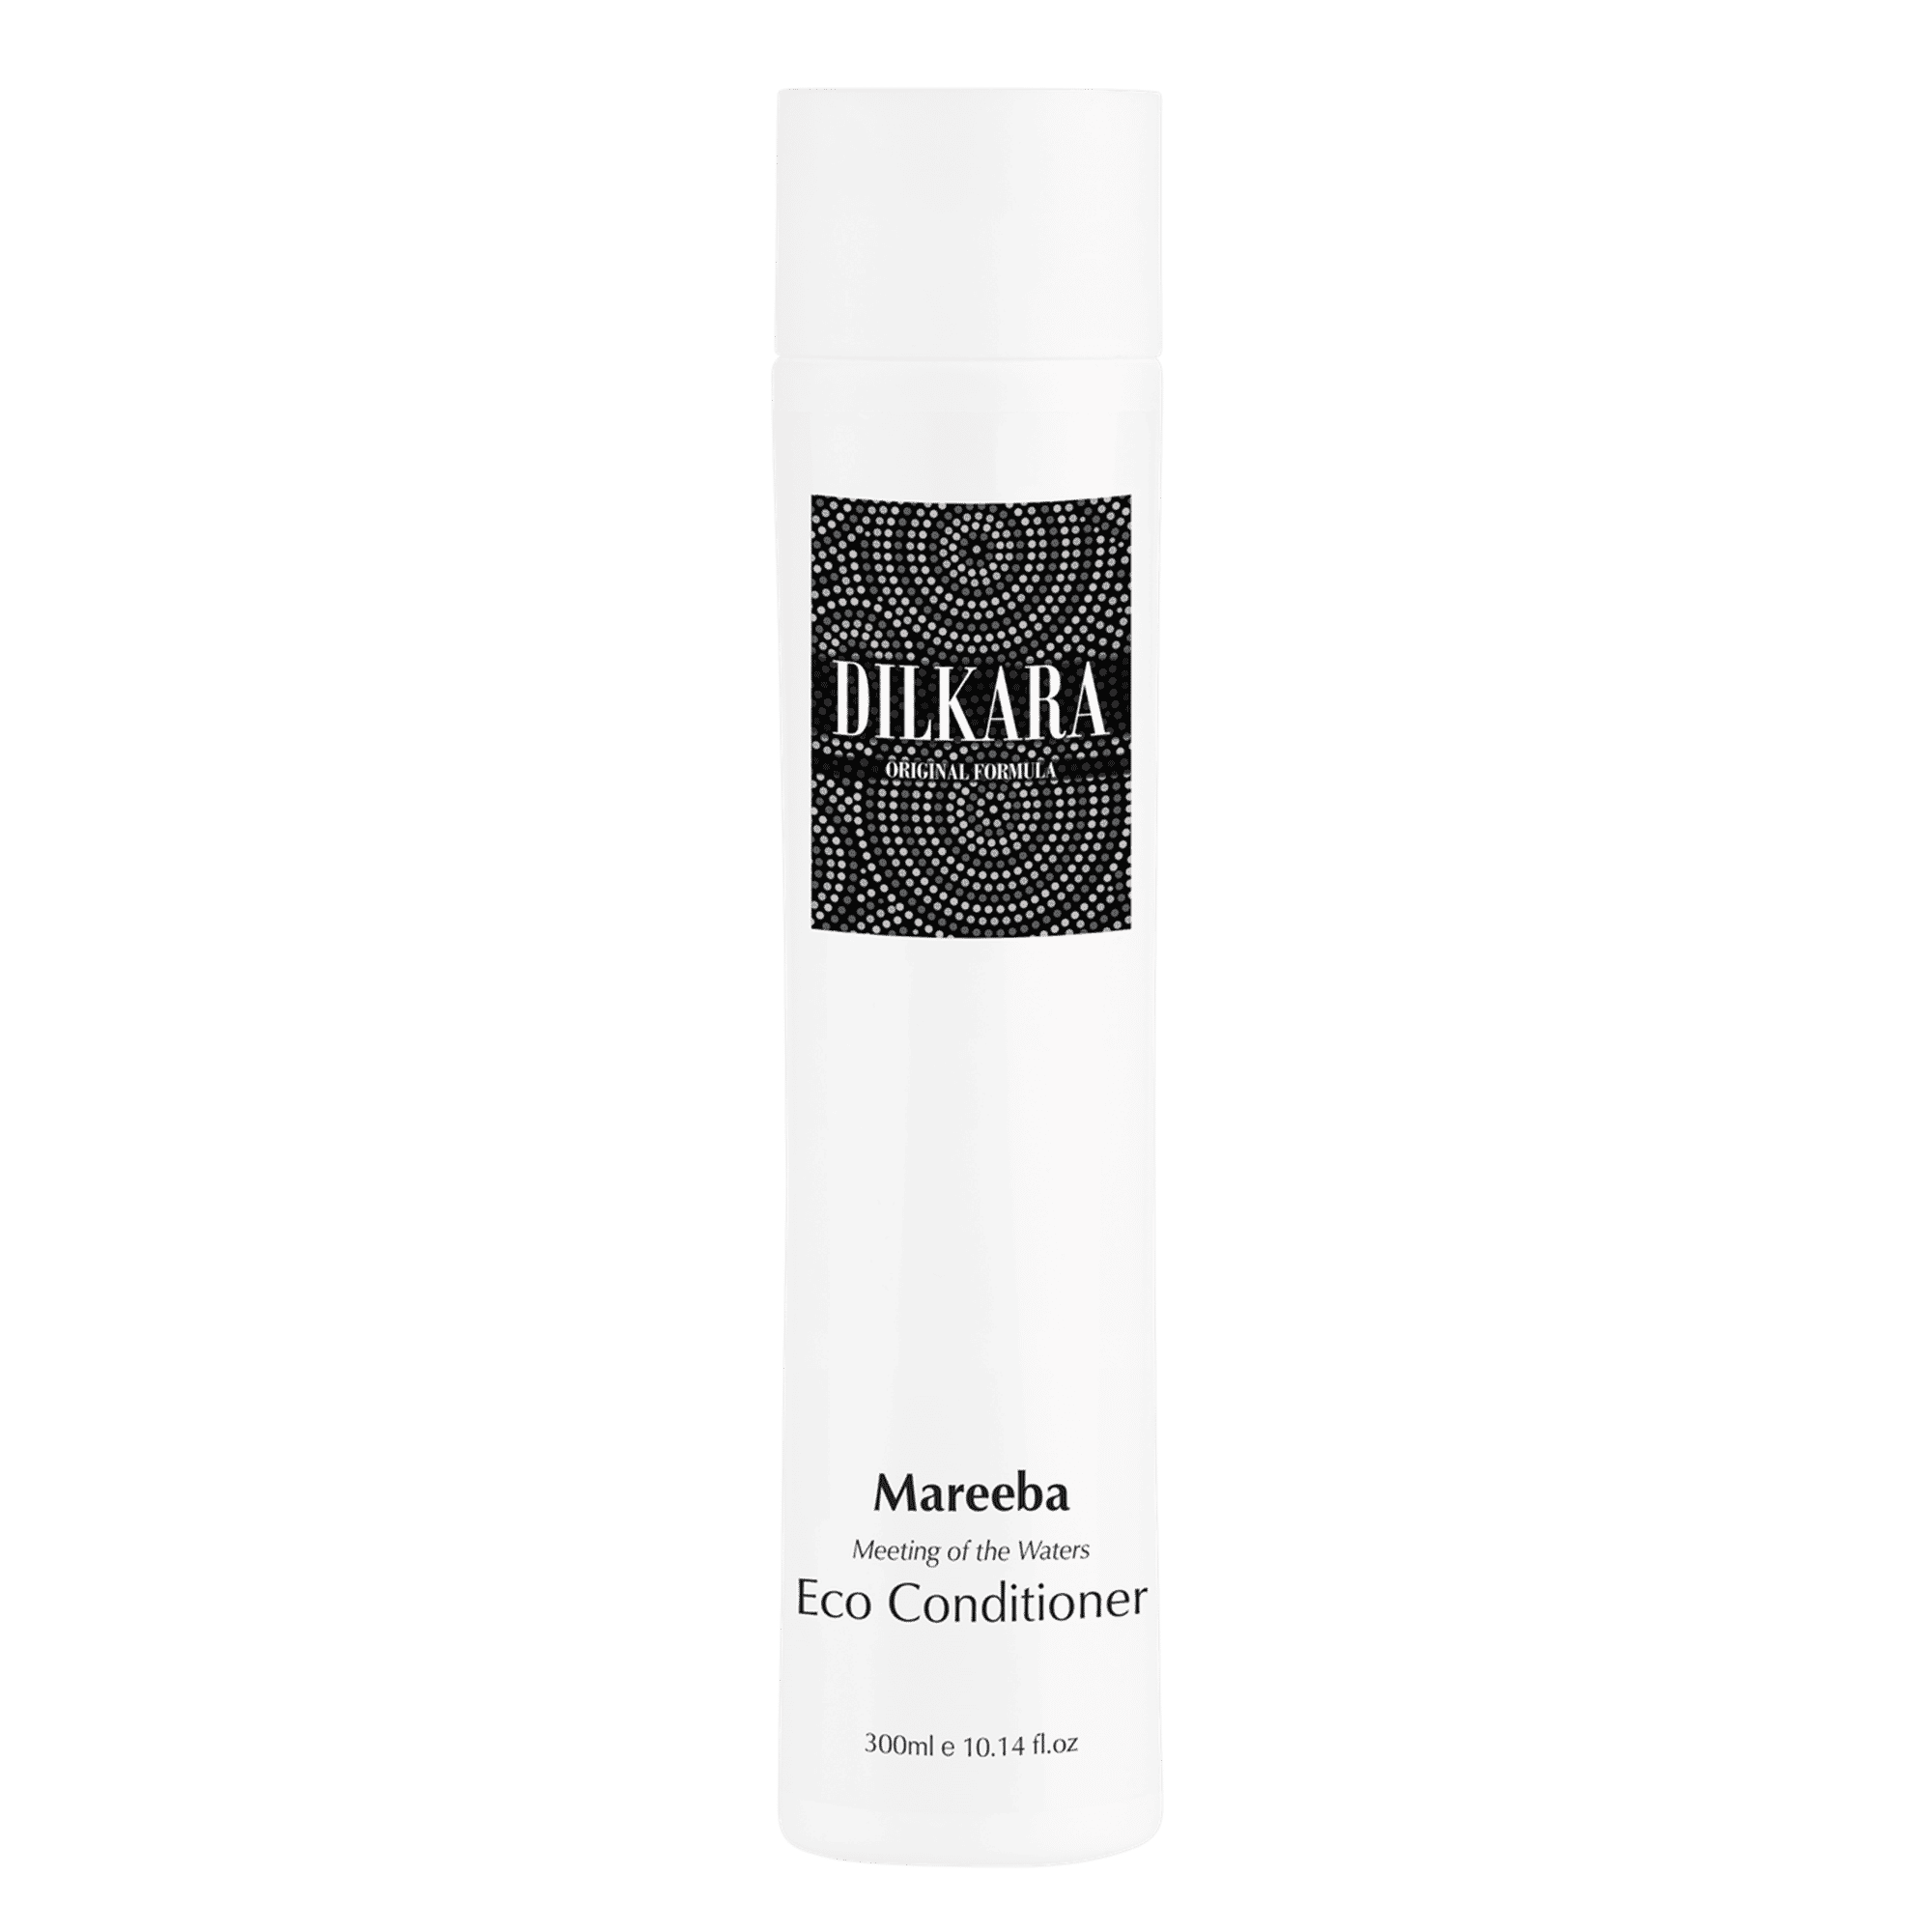 ORIGINAL FORMULA Eco Conditioner – Mareeba